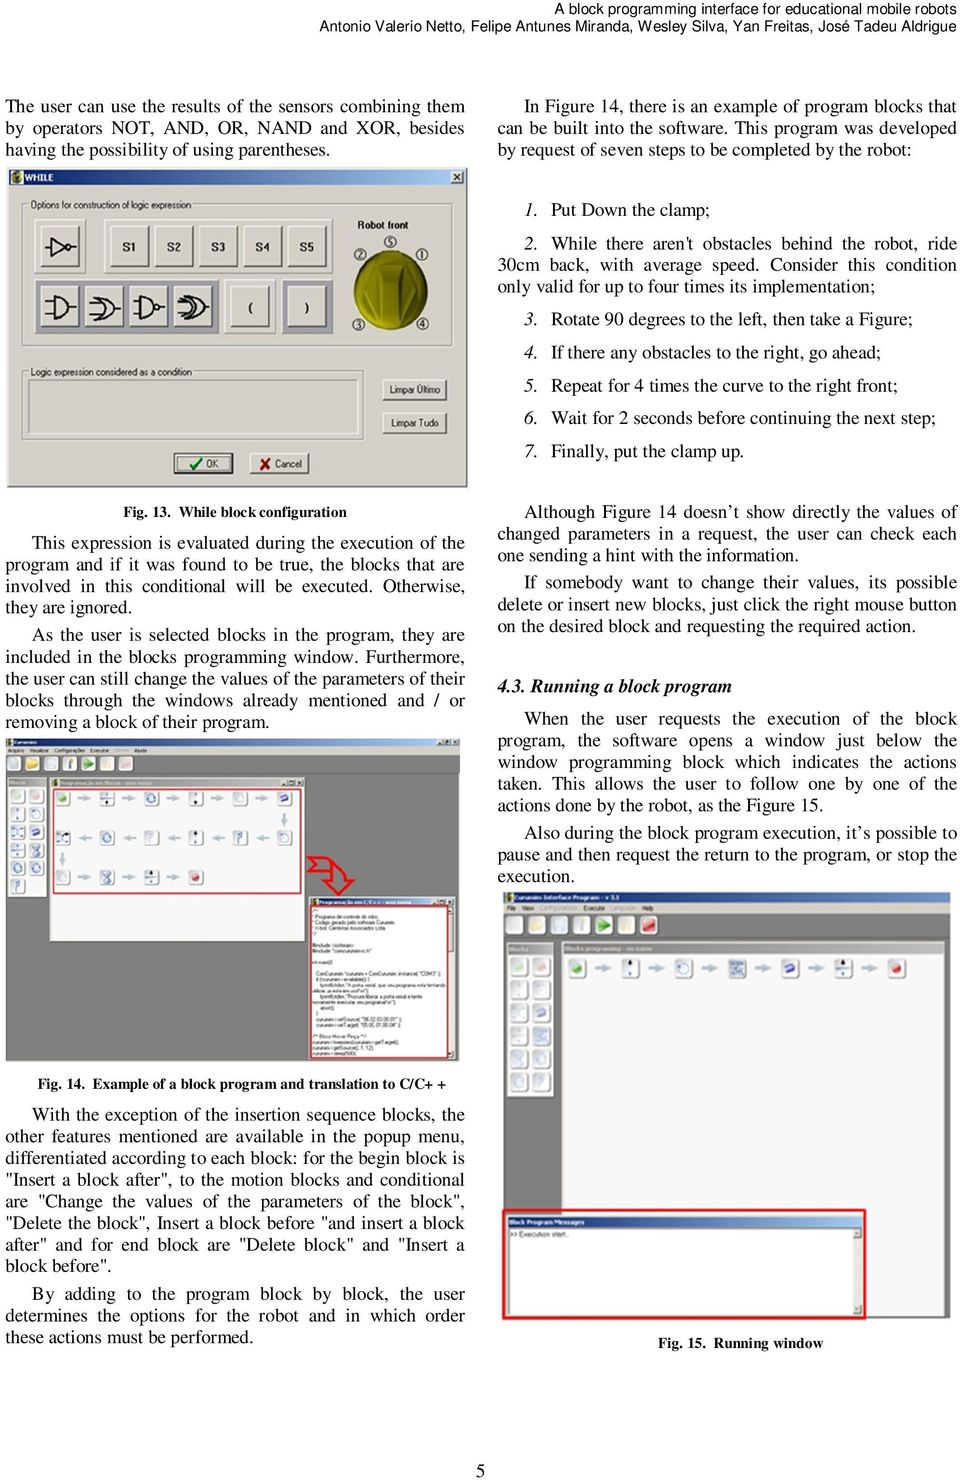 A BLOCK PROGRAMMING INTERFACE FOR EDUCATIONAL MOBILE ROBOTS - PDF